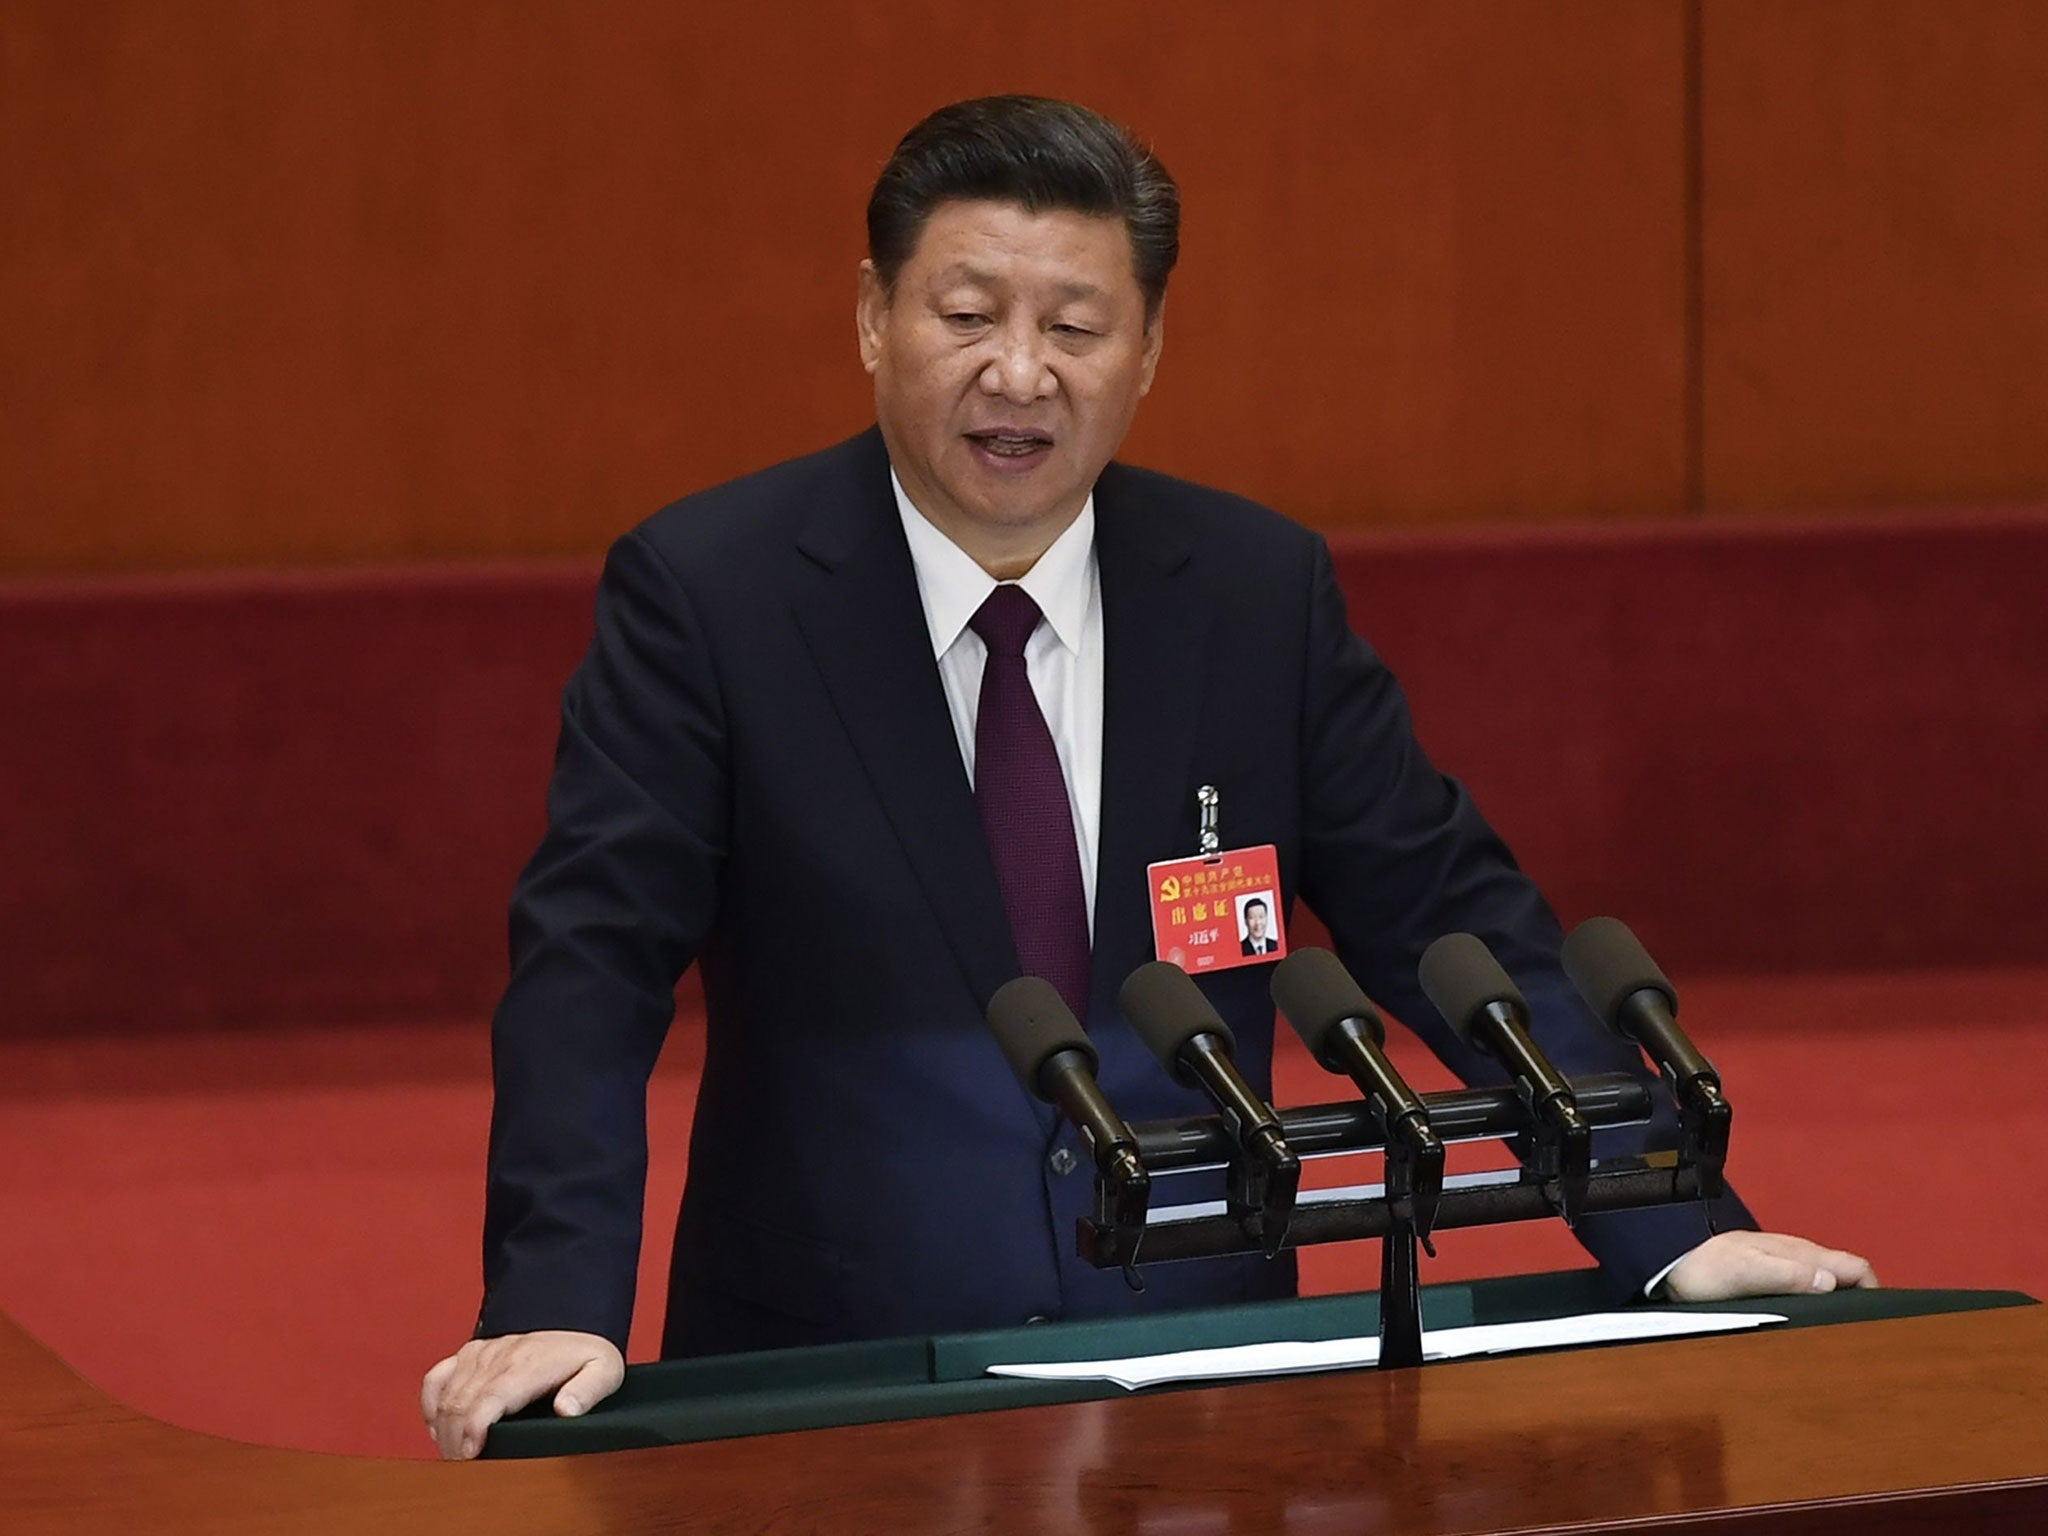 china as a superpower China economic superpower shared china xinhua news's post 18 hrs china xinhua news august 13, 2017 to fight poverty, china is in a race with time, and president xi has put himself on the front lines china focus: china fights for final victory over poverty newsxinhuanetcom.